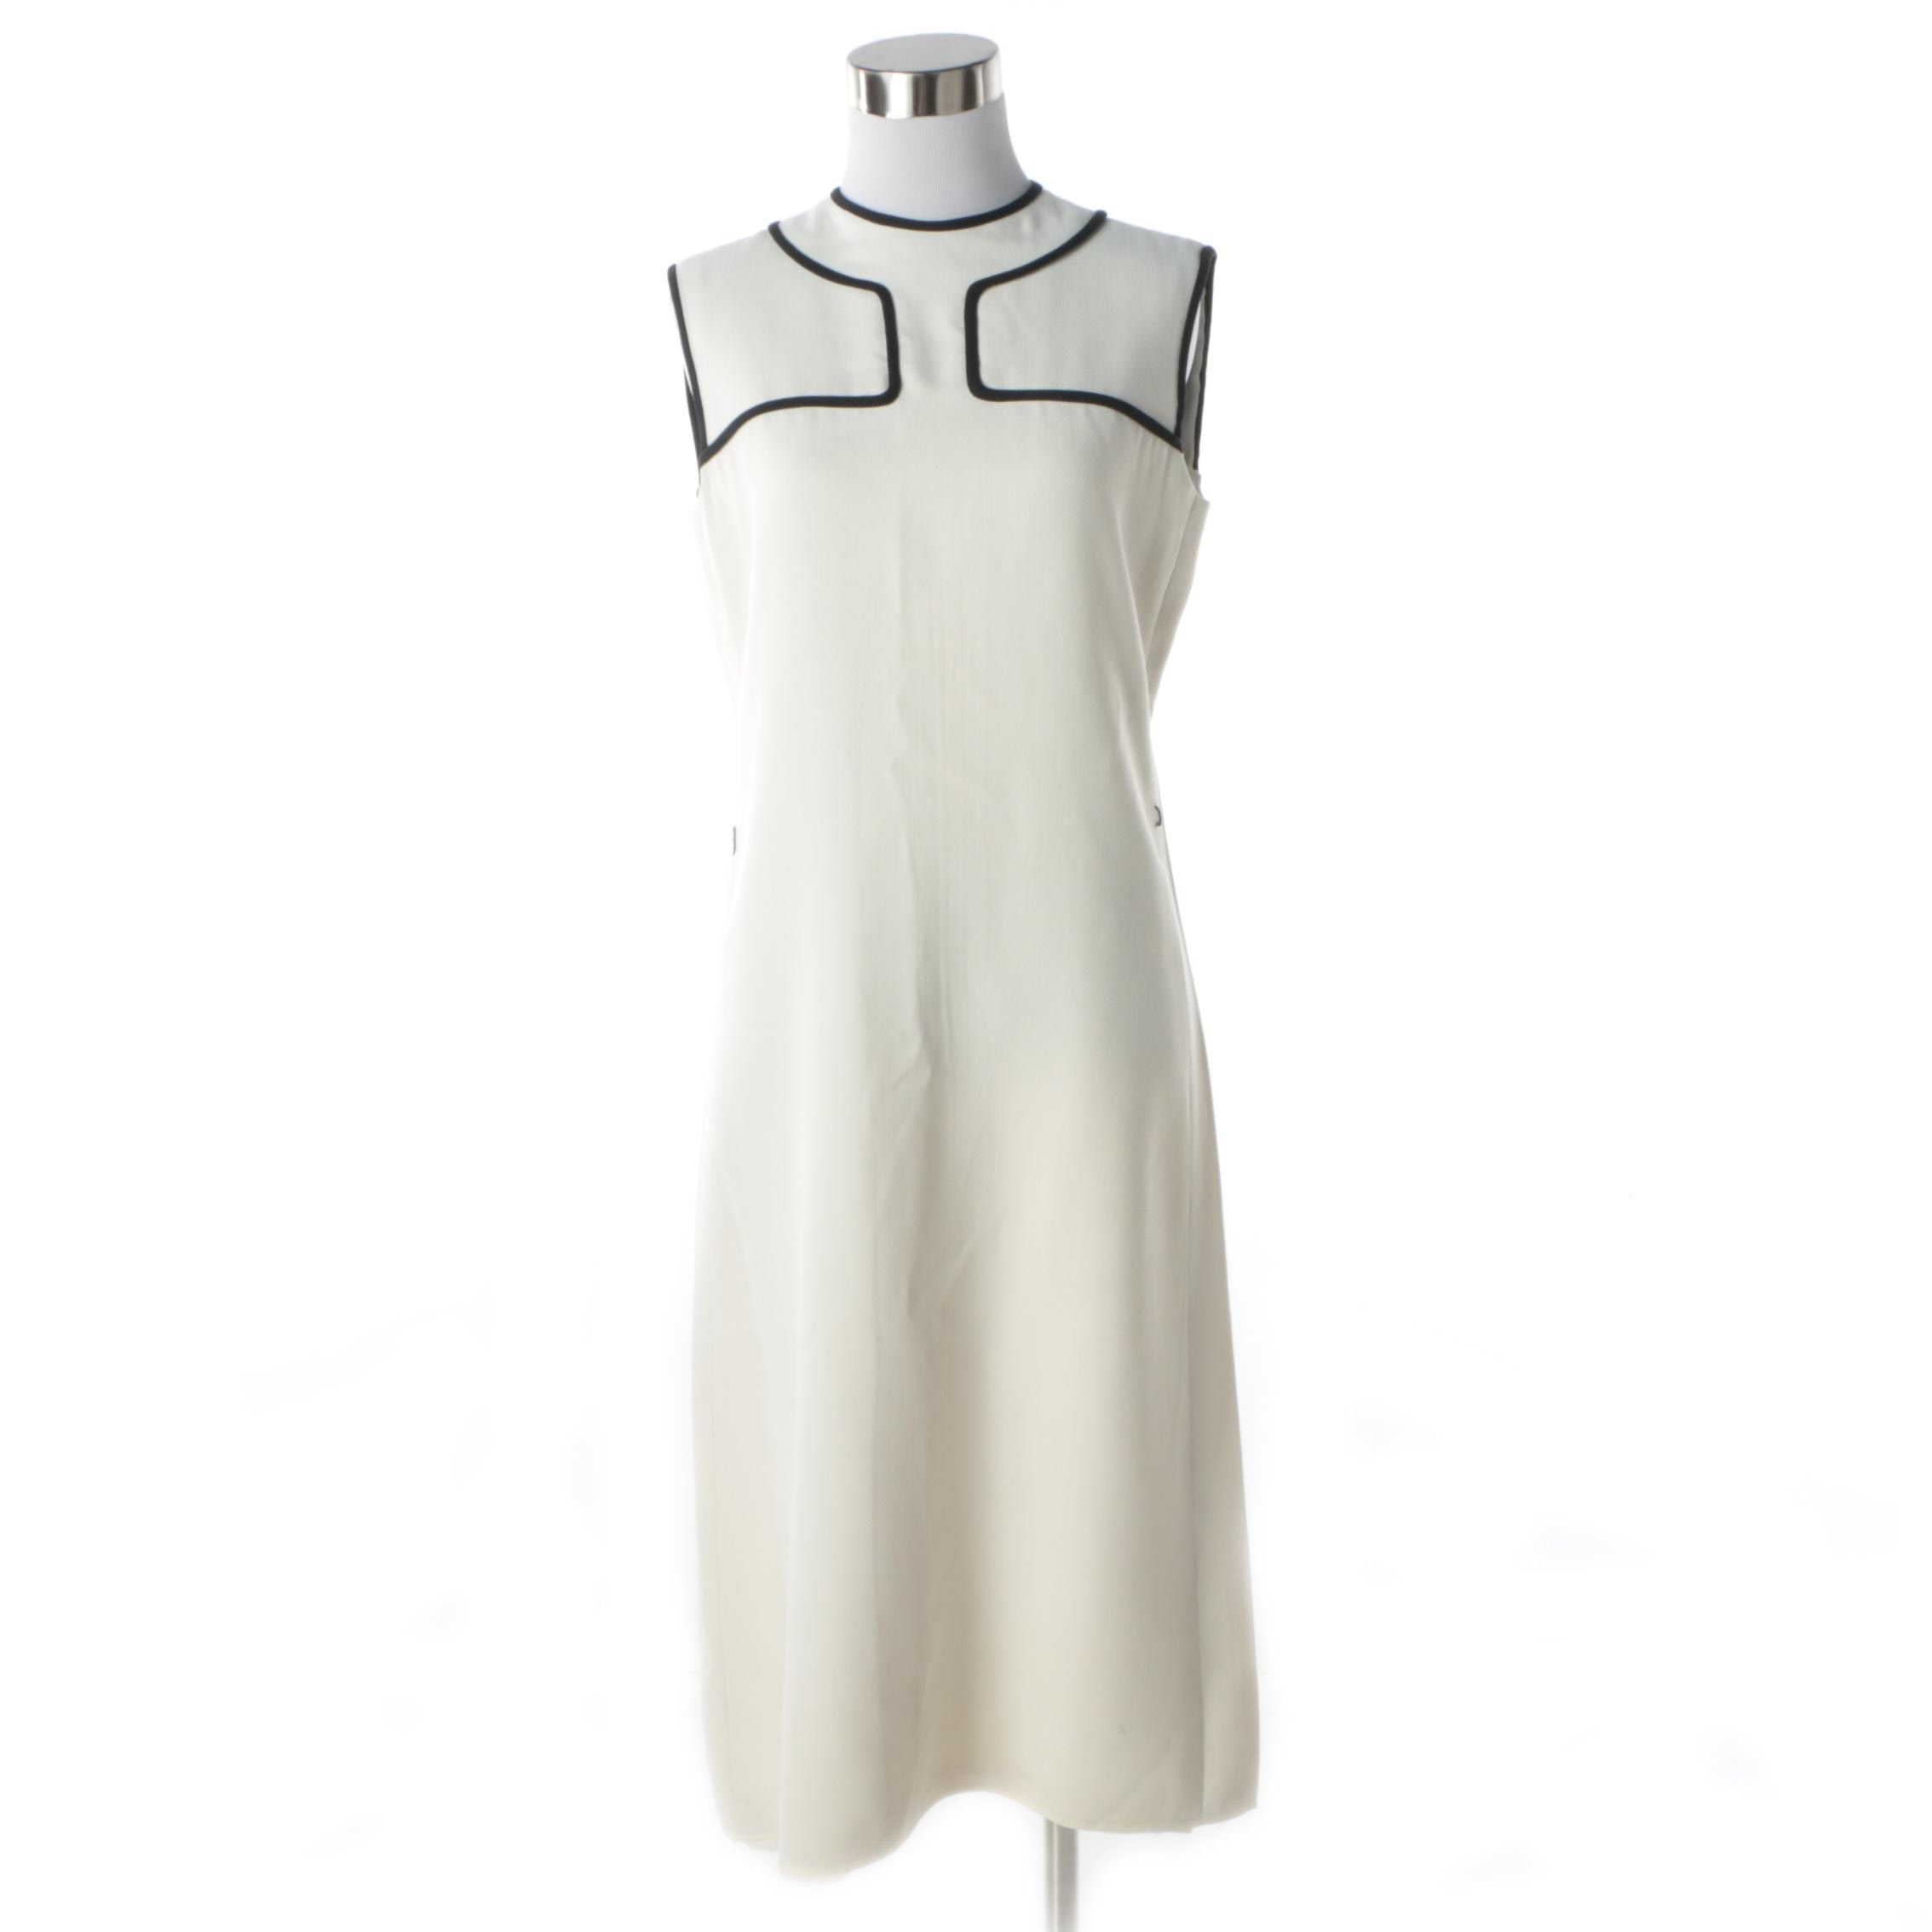 1960s Vintage Donald Brooks Cream Mod Shift Dress with Geometric Black Piping